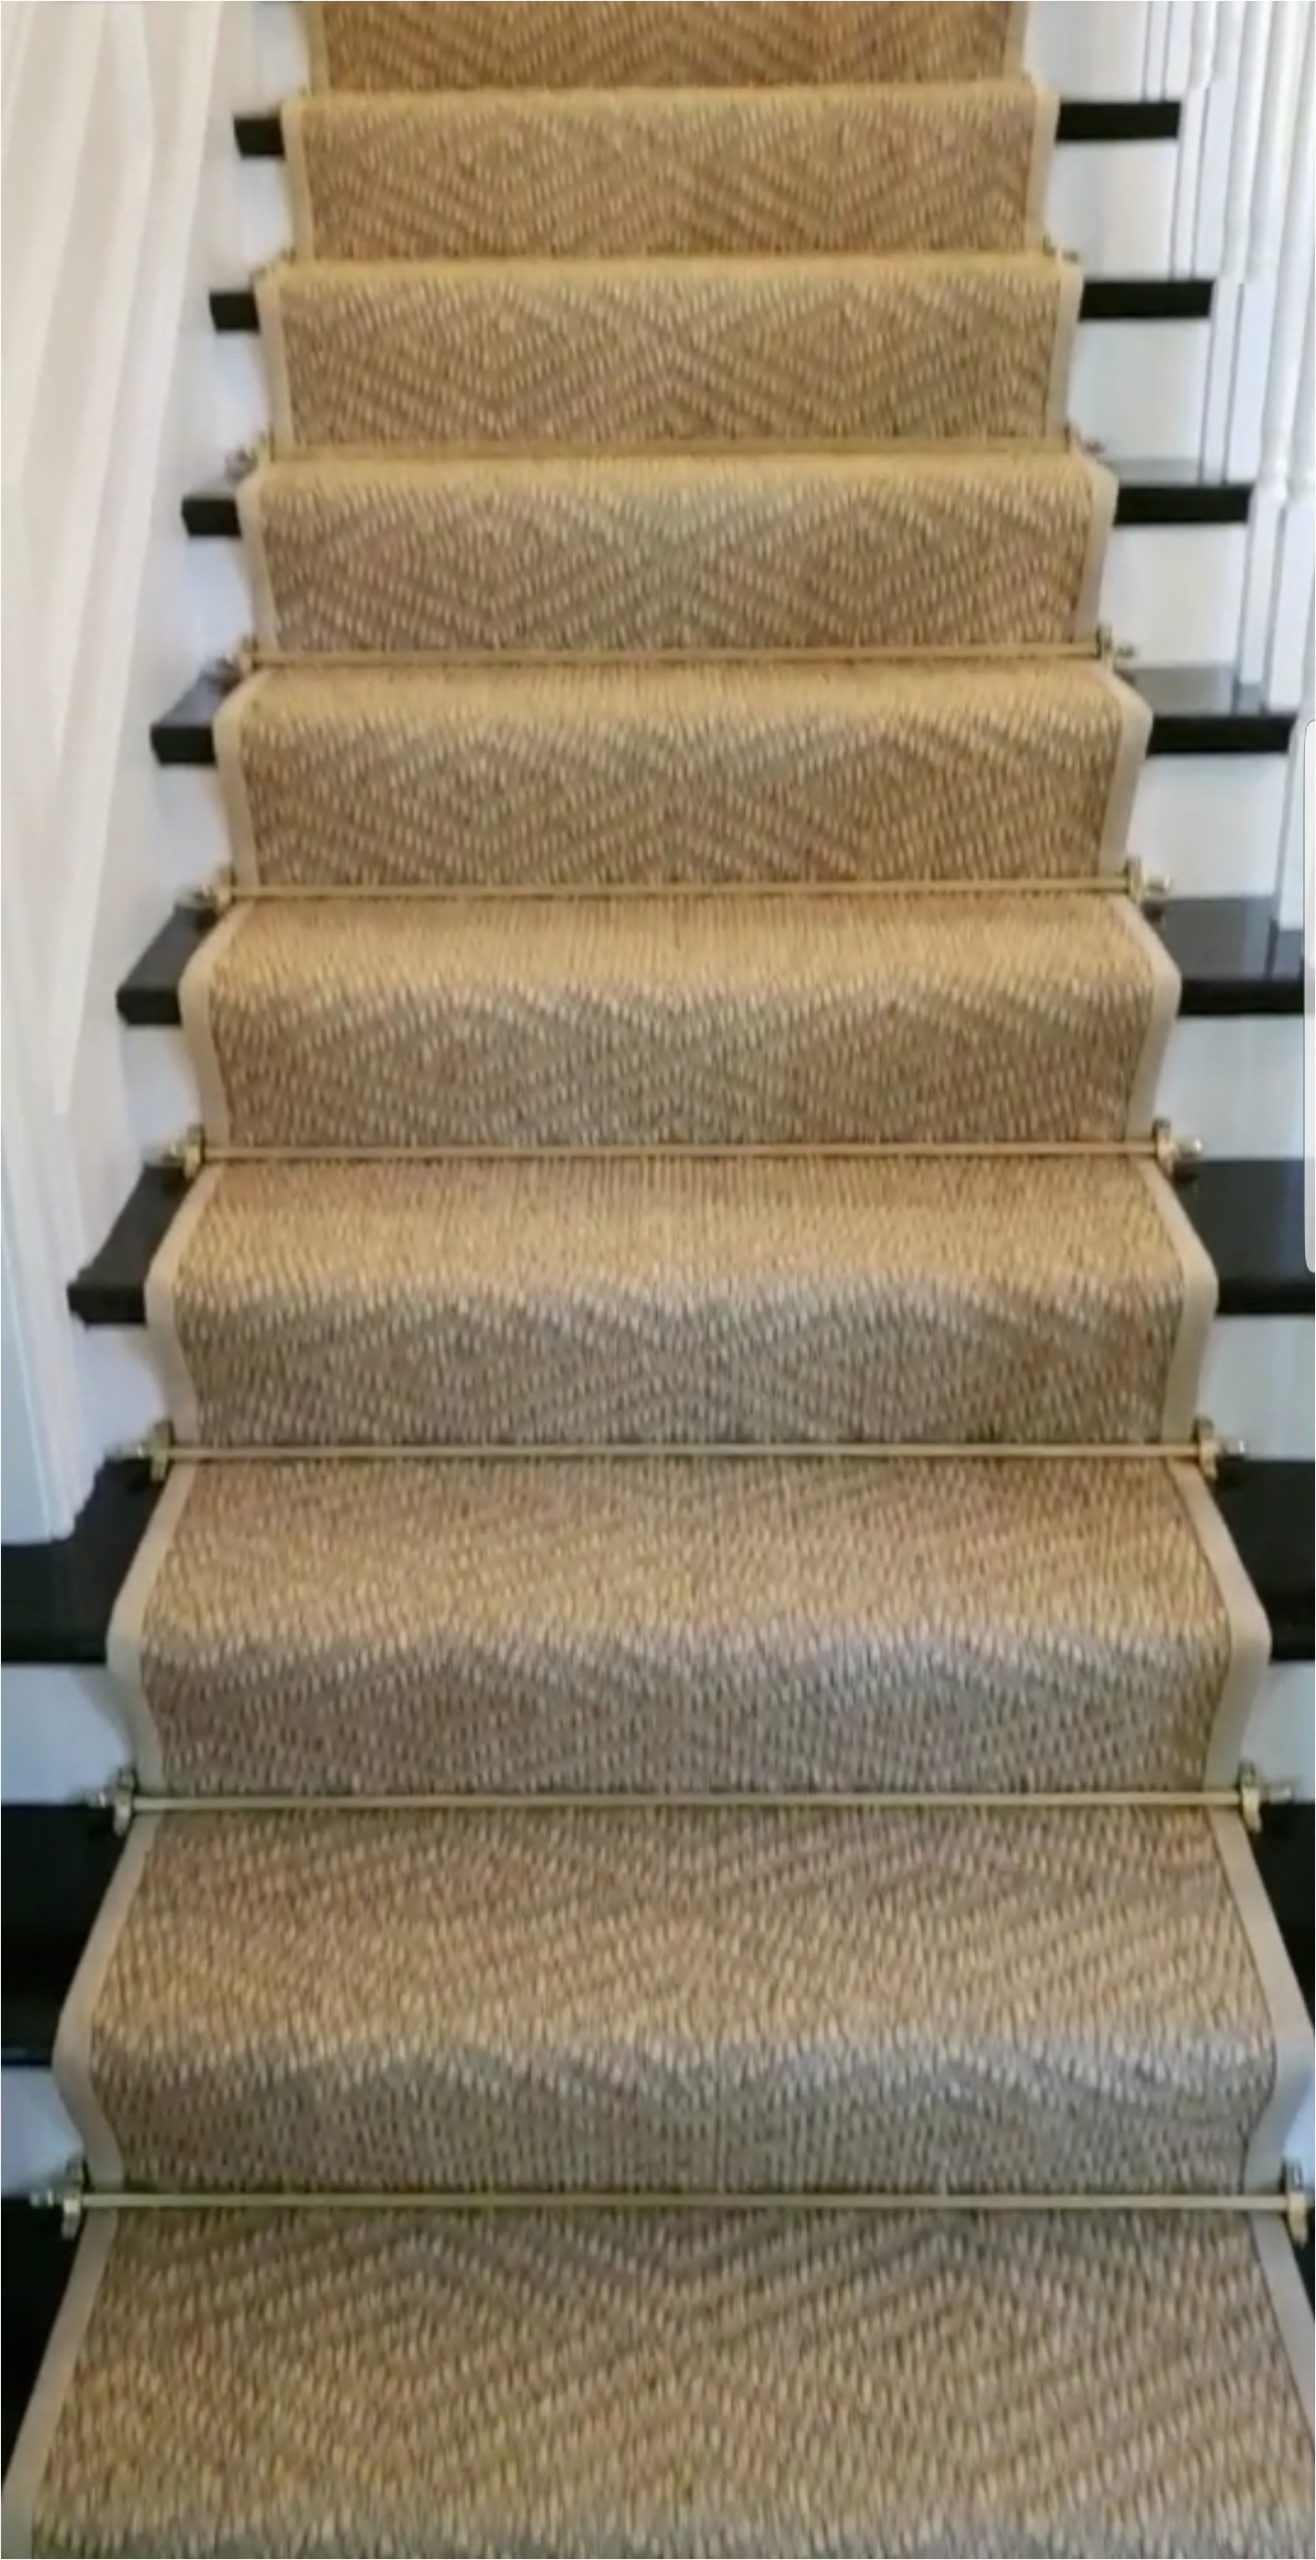 Sissal Stair Runner with Wide Binding and Stair Rods